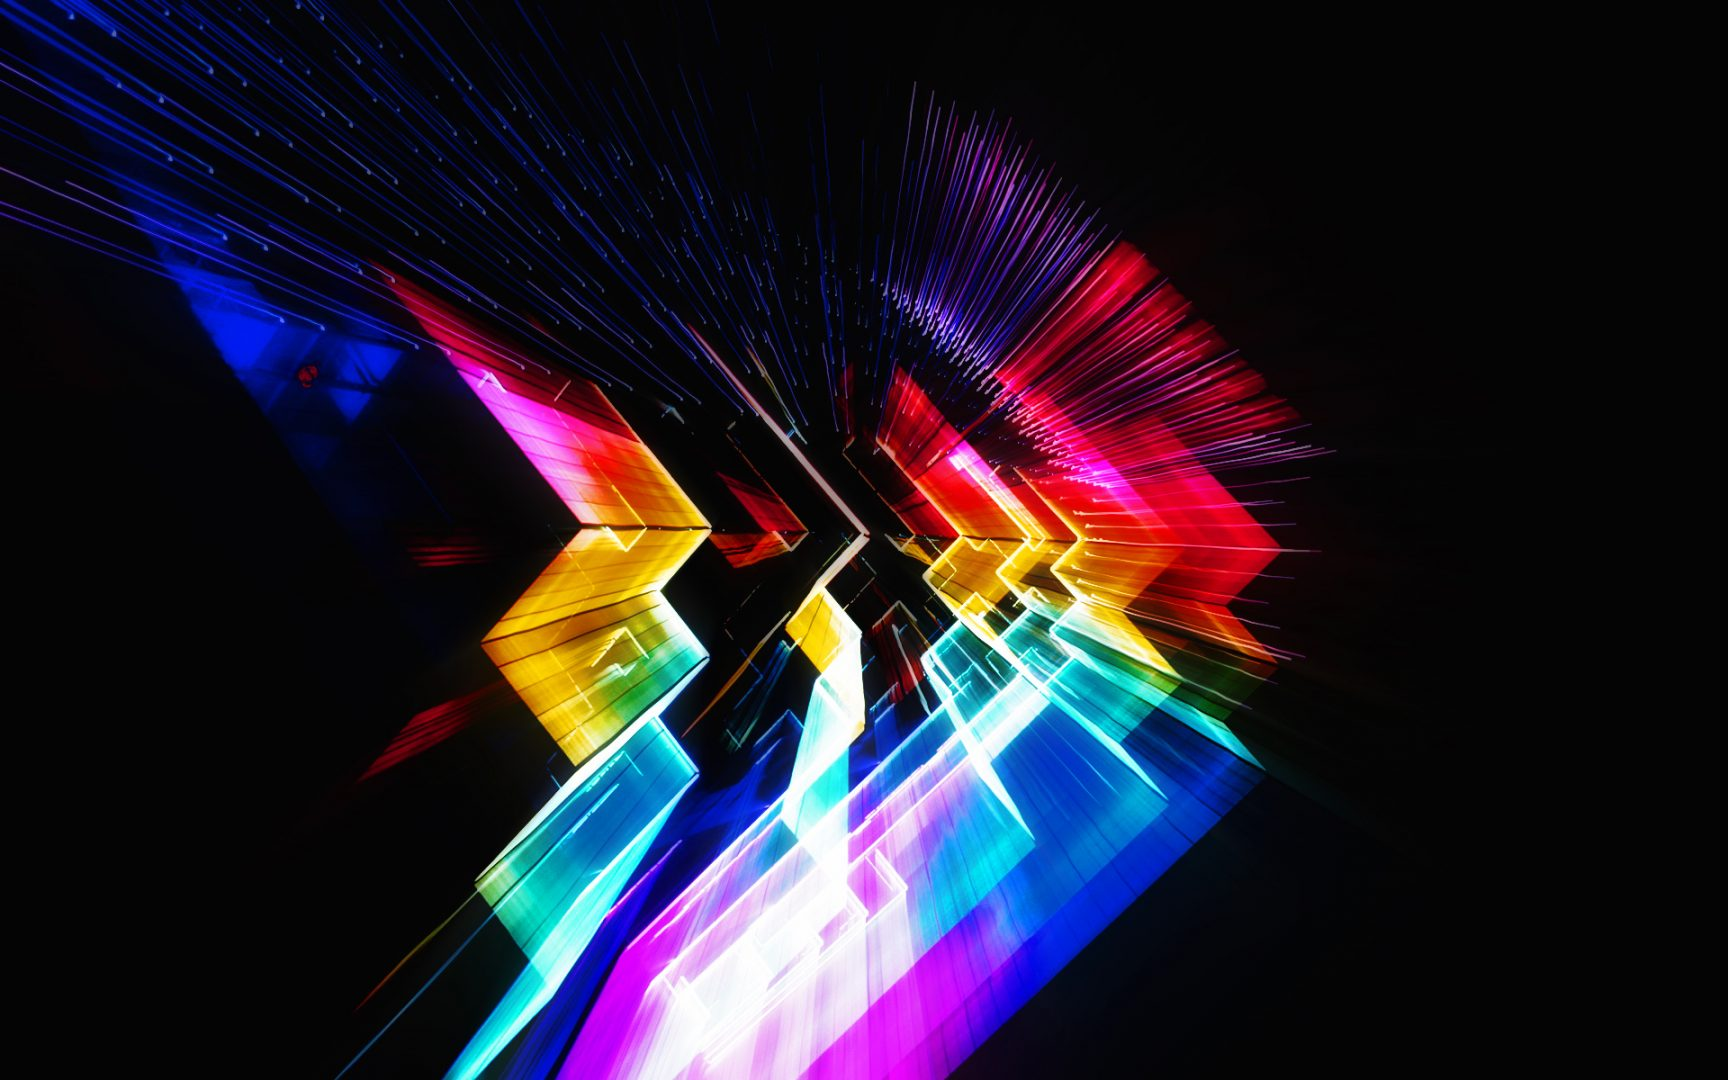 Cool Lights Abstract Colourful Cool Hd Lights Digital 336